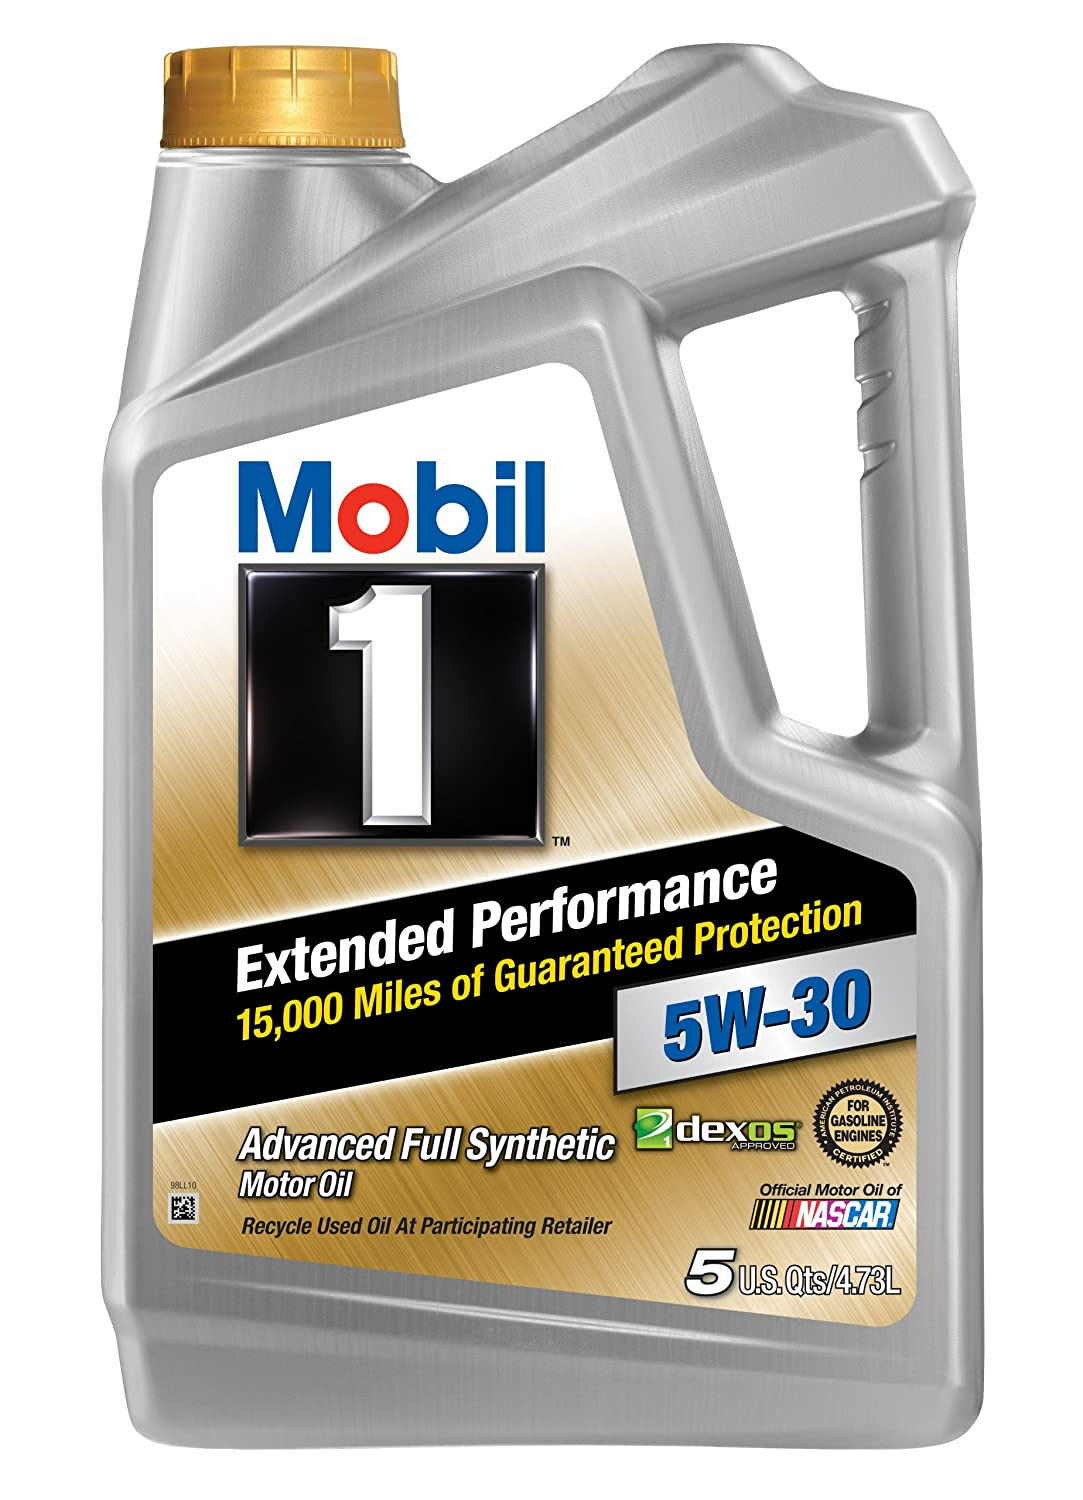 Motor oils car care cleaning kits review for Best price motor oil